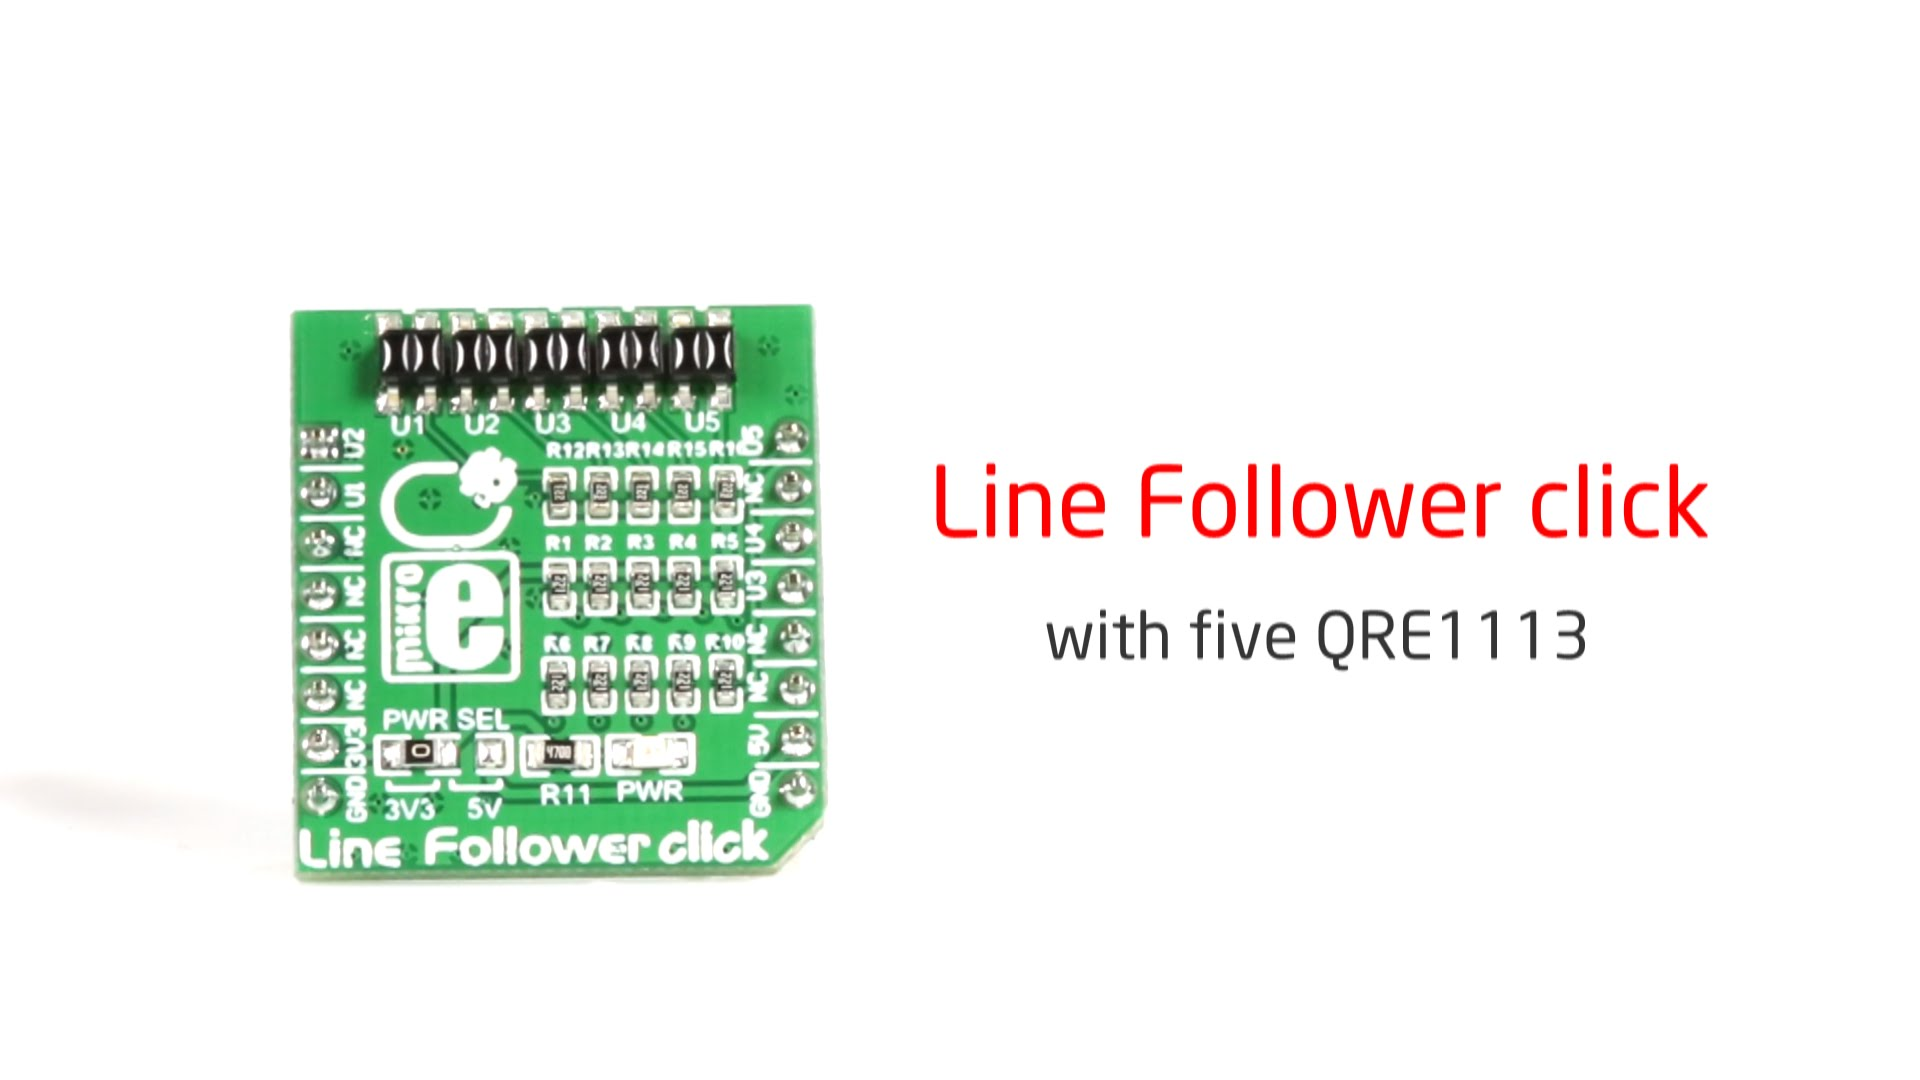 Line Follower click released